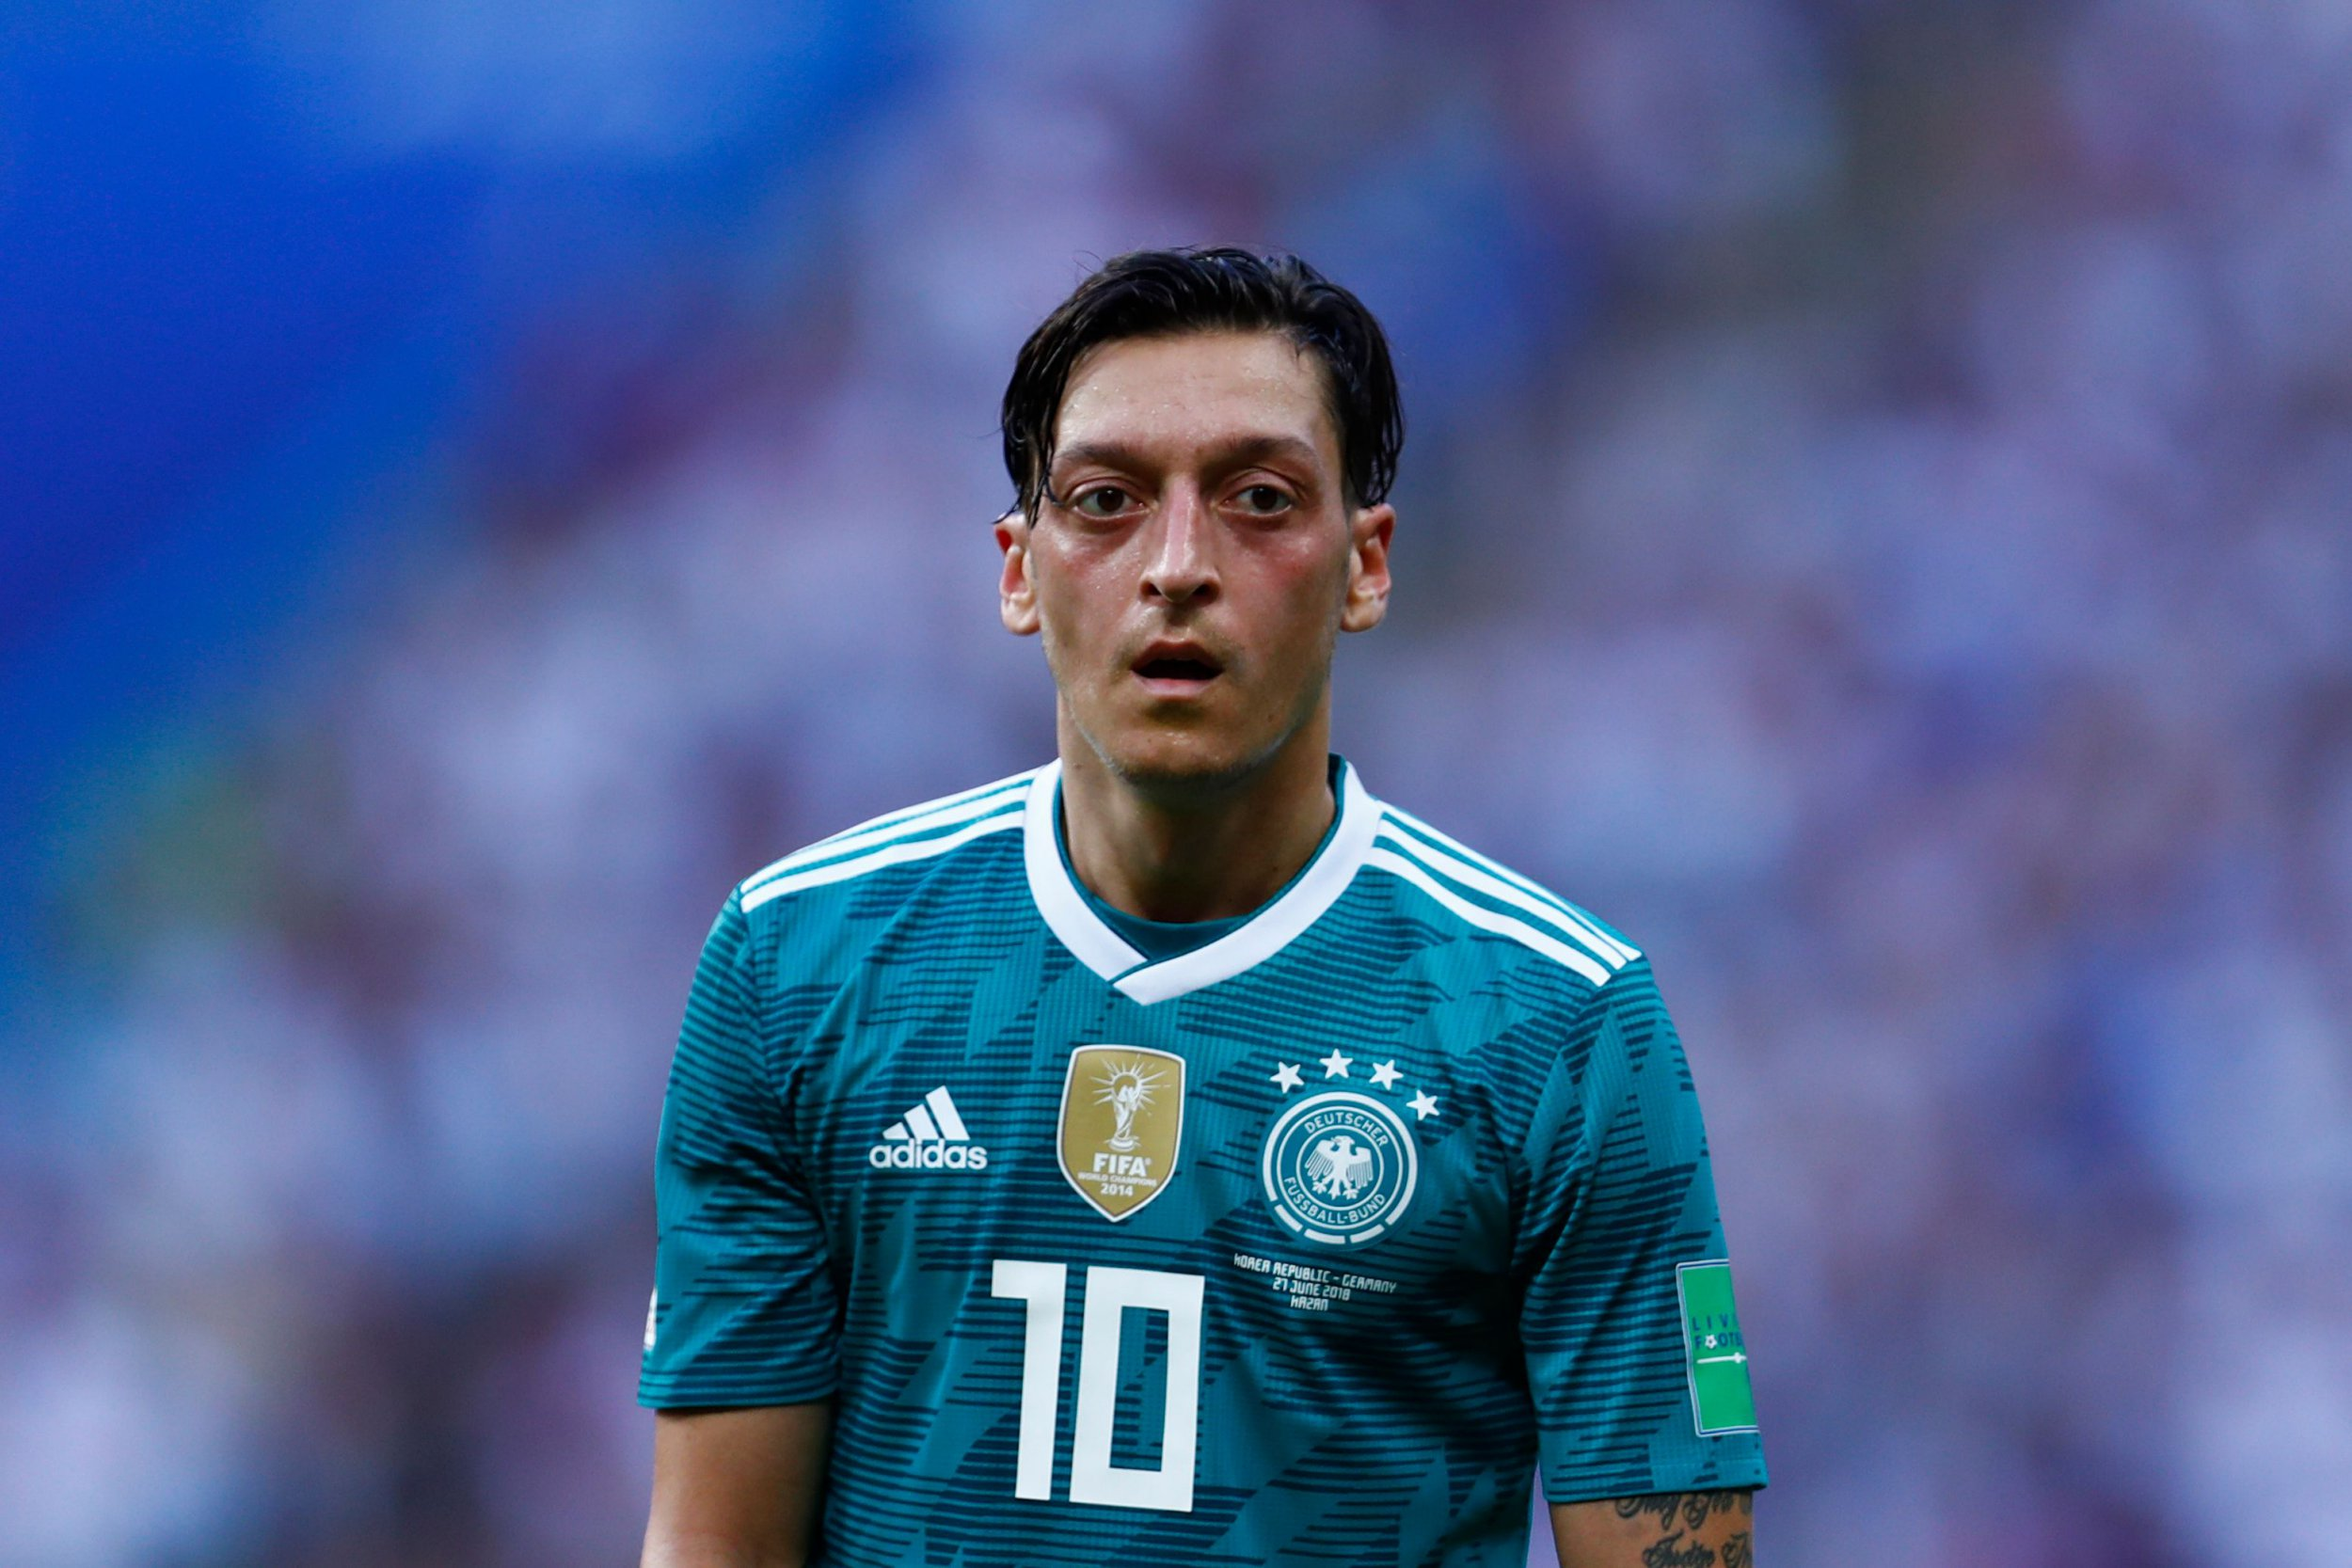 Germany's midfielder Mesut Ozil looks on during the Russia 2018 World Cup Group F football match between South Korea and Germany at the Kazan Arena in Kazan on June 27, 2018. / AFP PHOTO / BENJAMIN CREMEL / RESTRICTED TO EDITORIAL USE - NO MOBILE PUSH ALERTS/DOWNLOADSBENJAMIN CREMEL/AFP/Getty Images